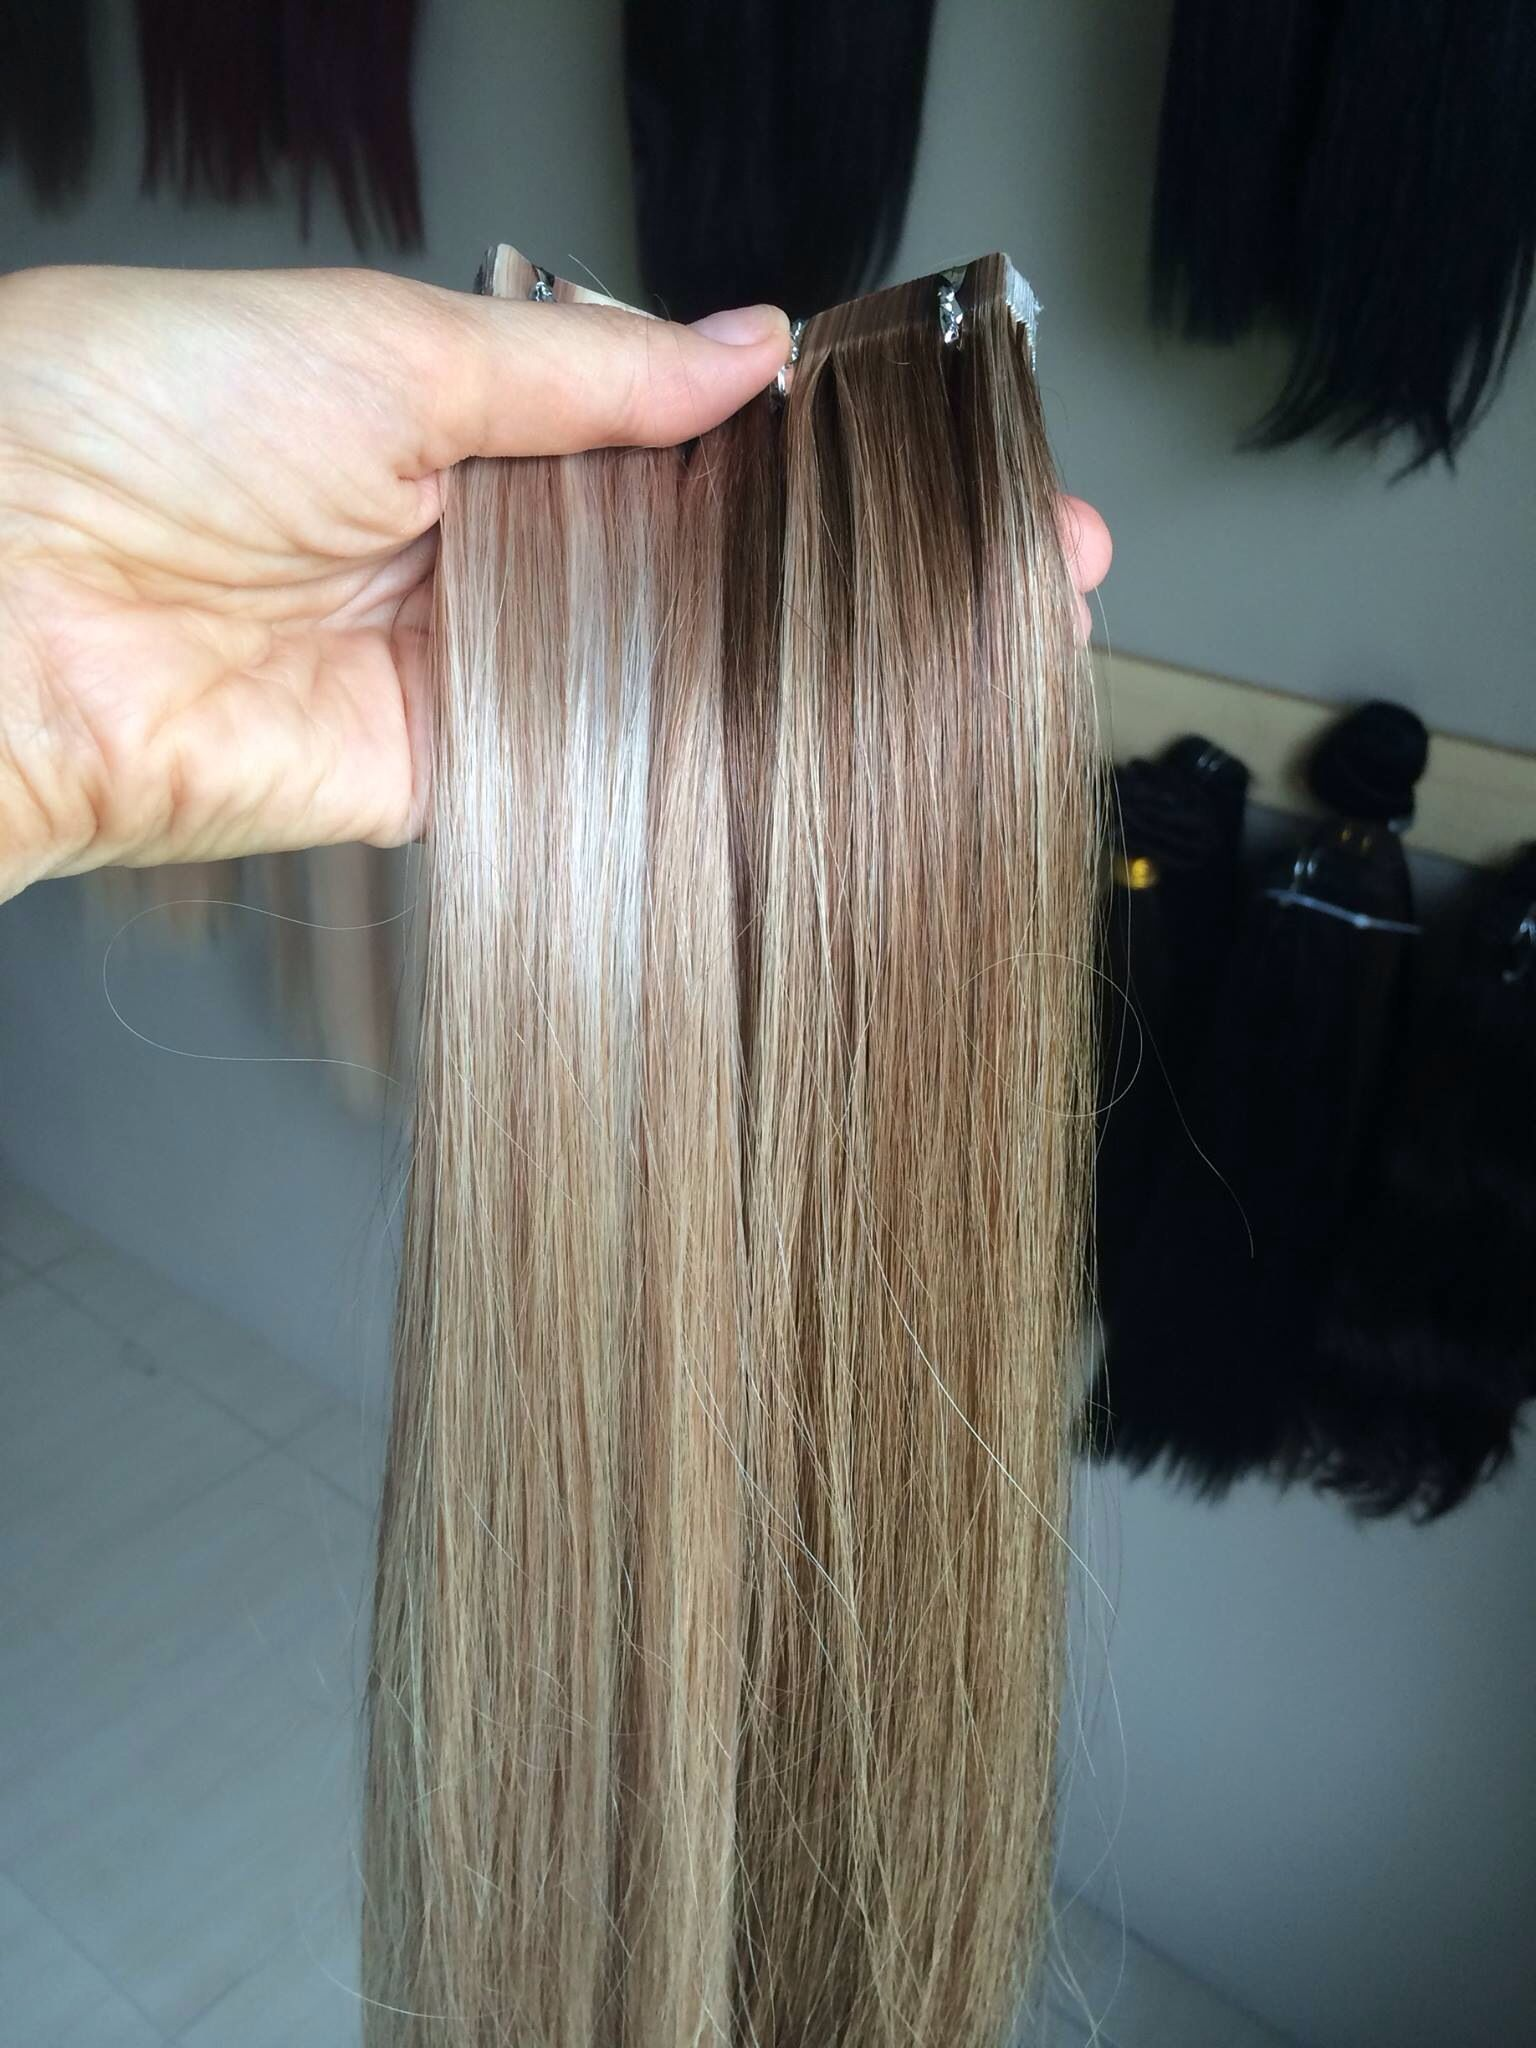 Perfect seamless tape strands of love hair extensions strands of perfect seamless tape strands of love hair extensions pmusecretfo Gallery